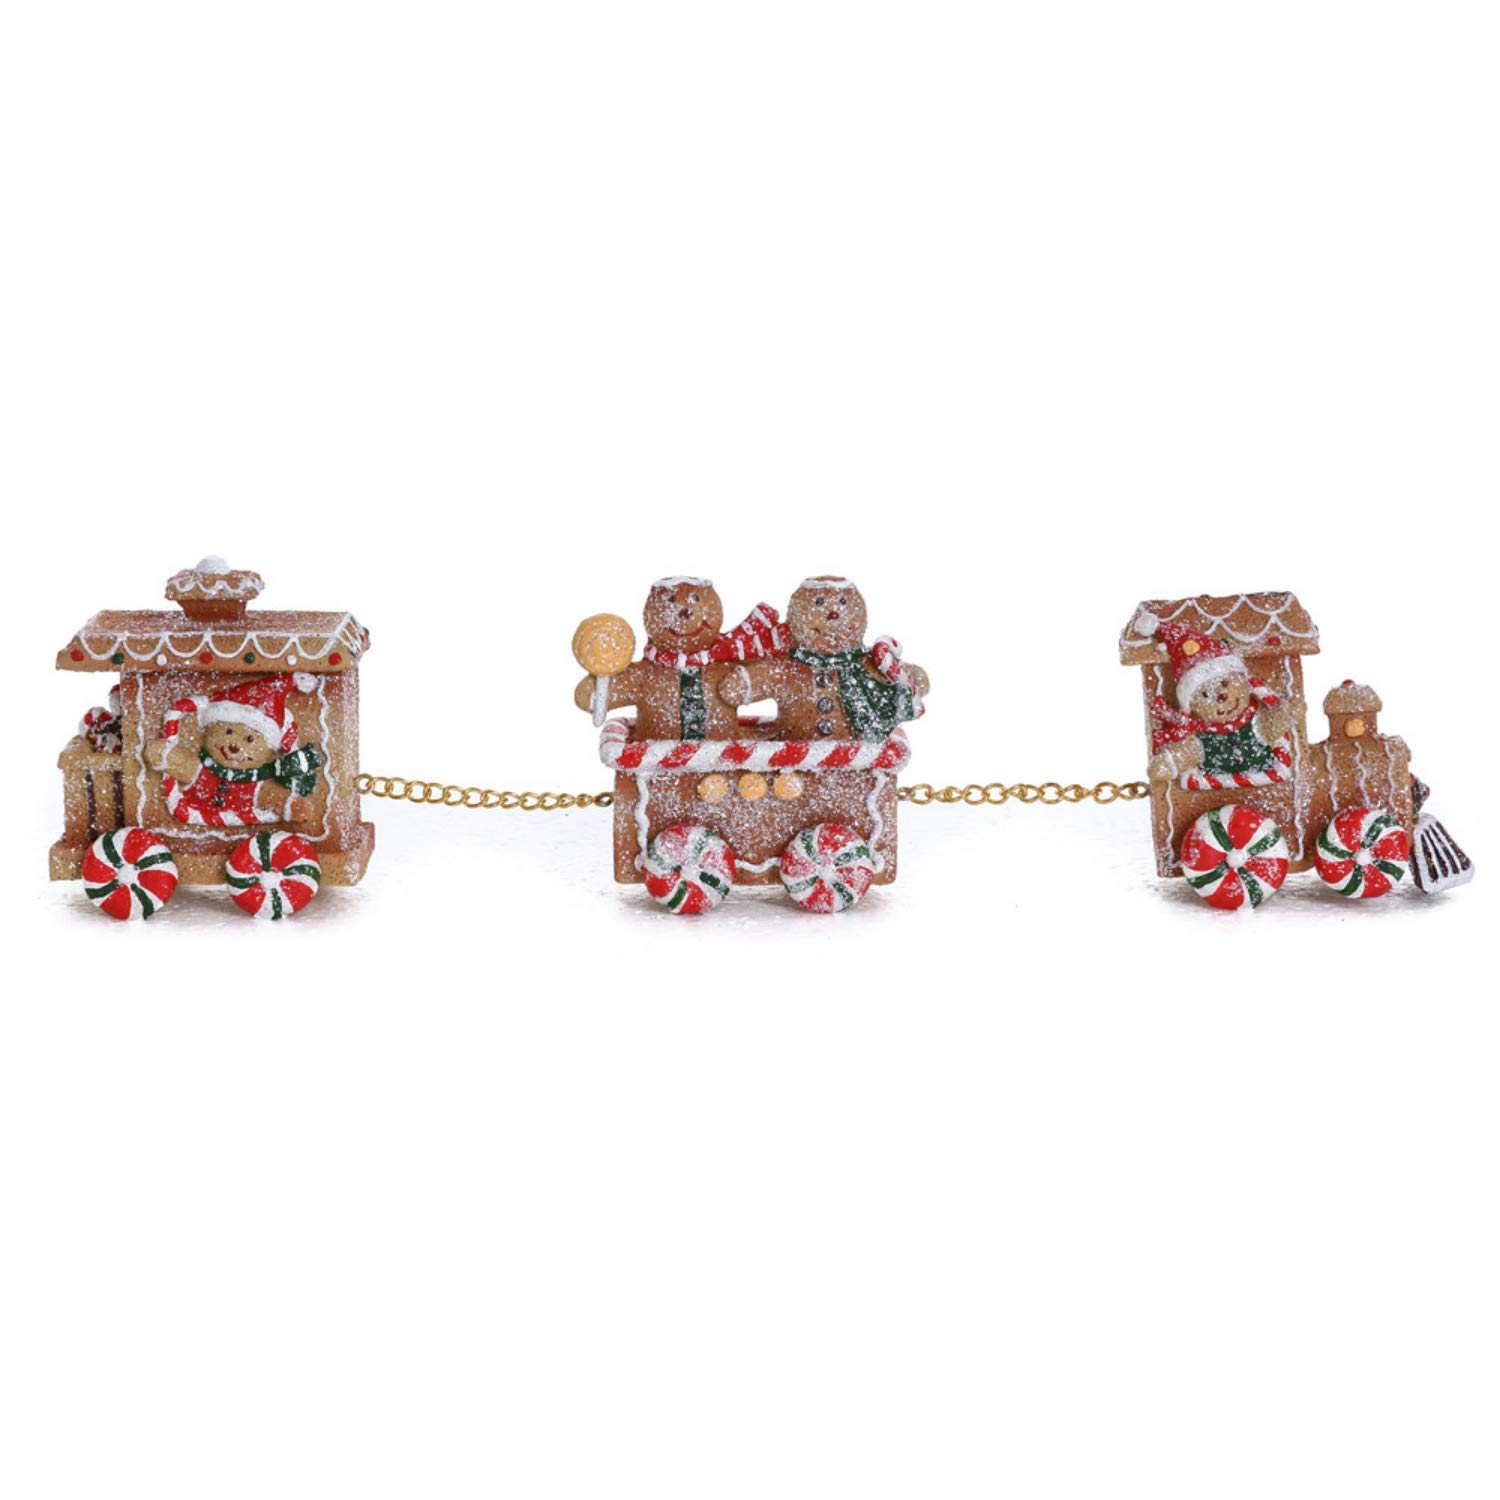 Small Three Car Christmas Gingerbread Train with Gingerbread People - Tabletop Holiday Decoration